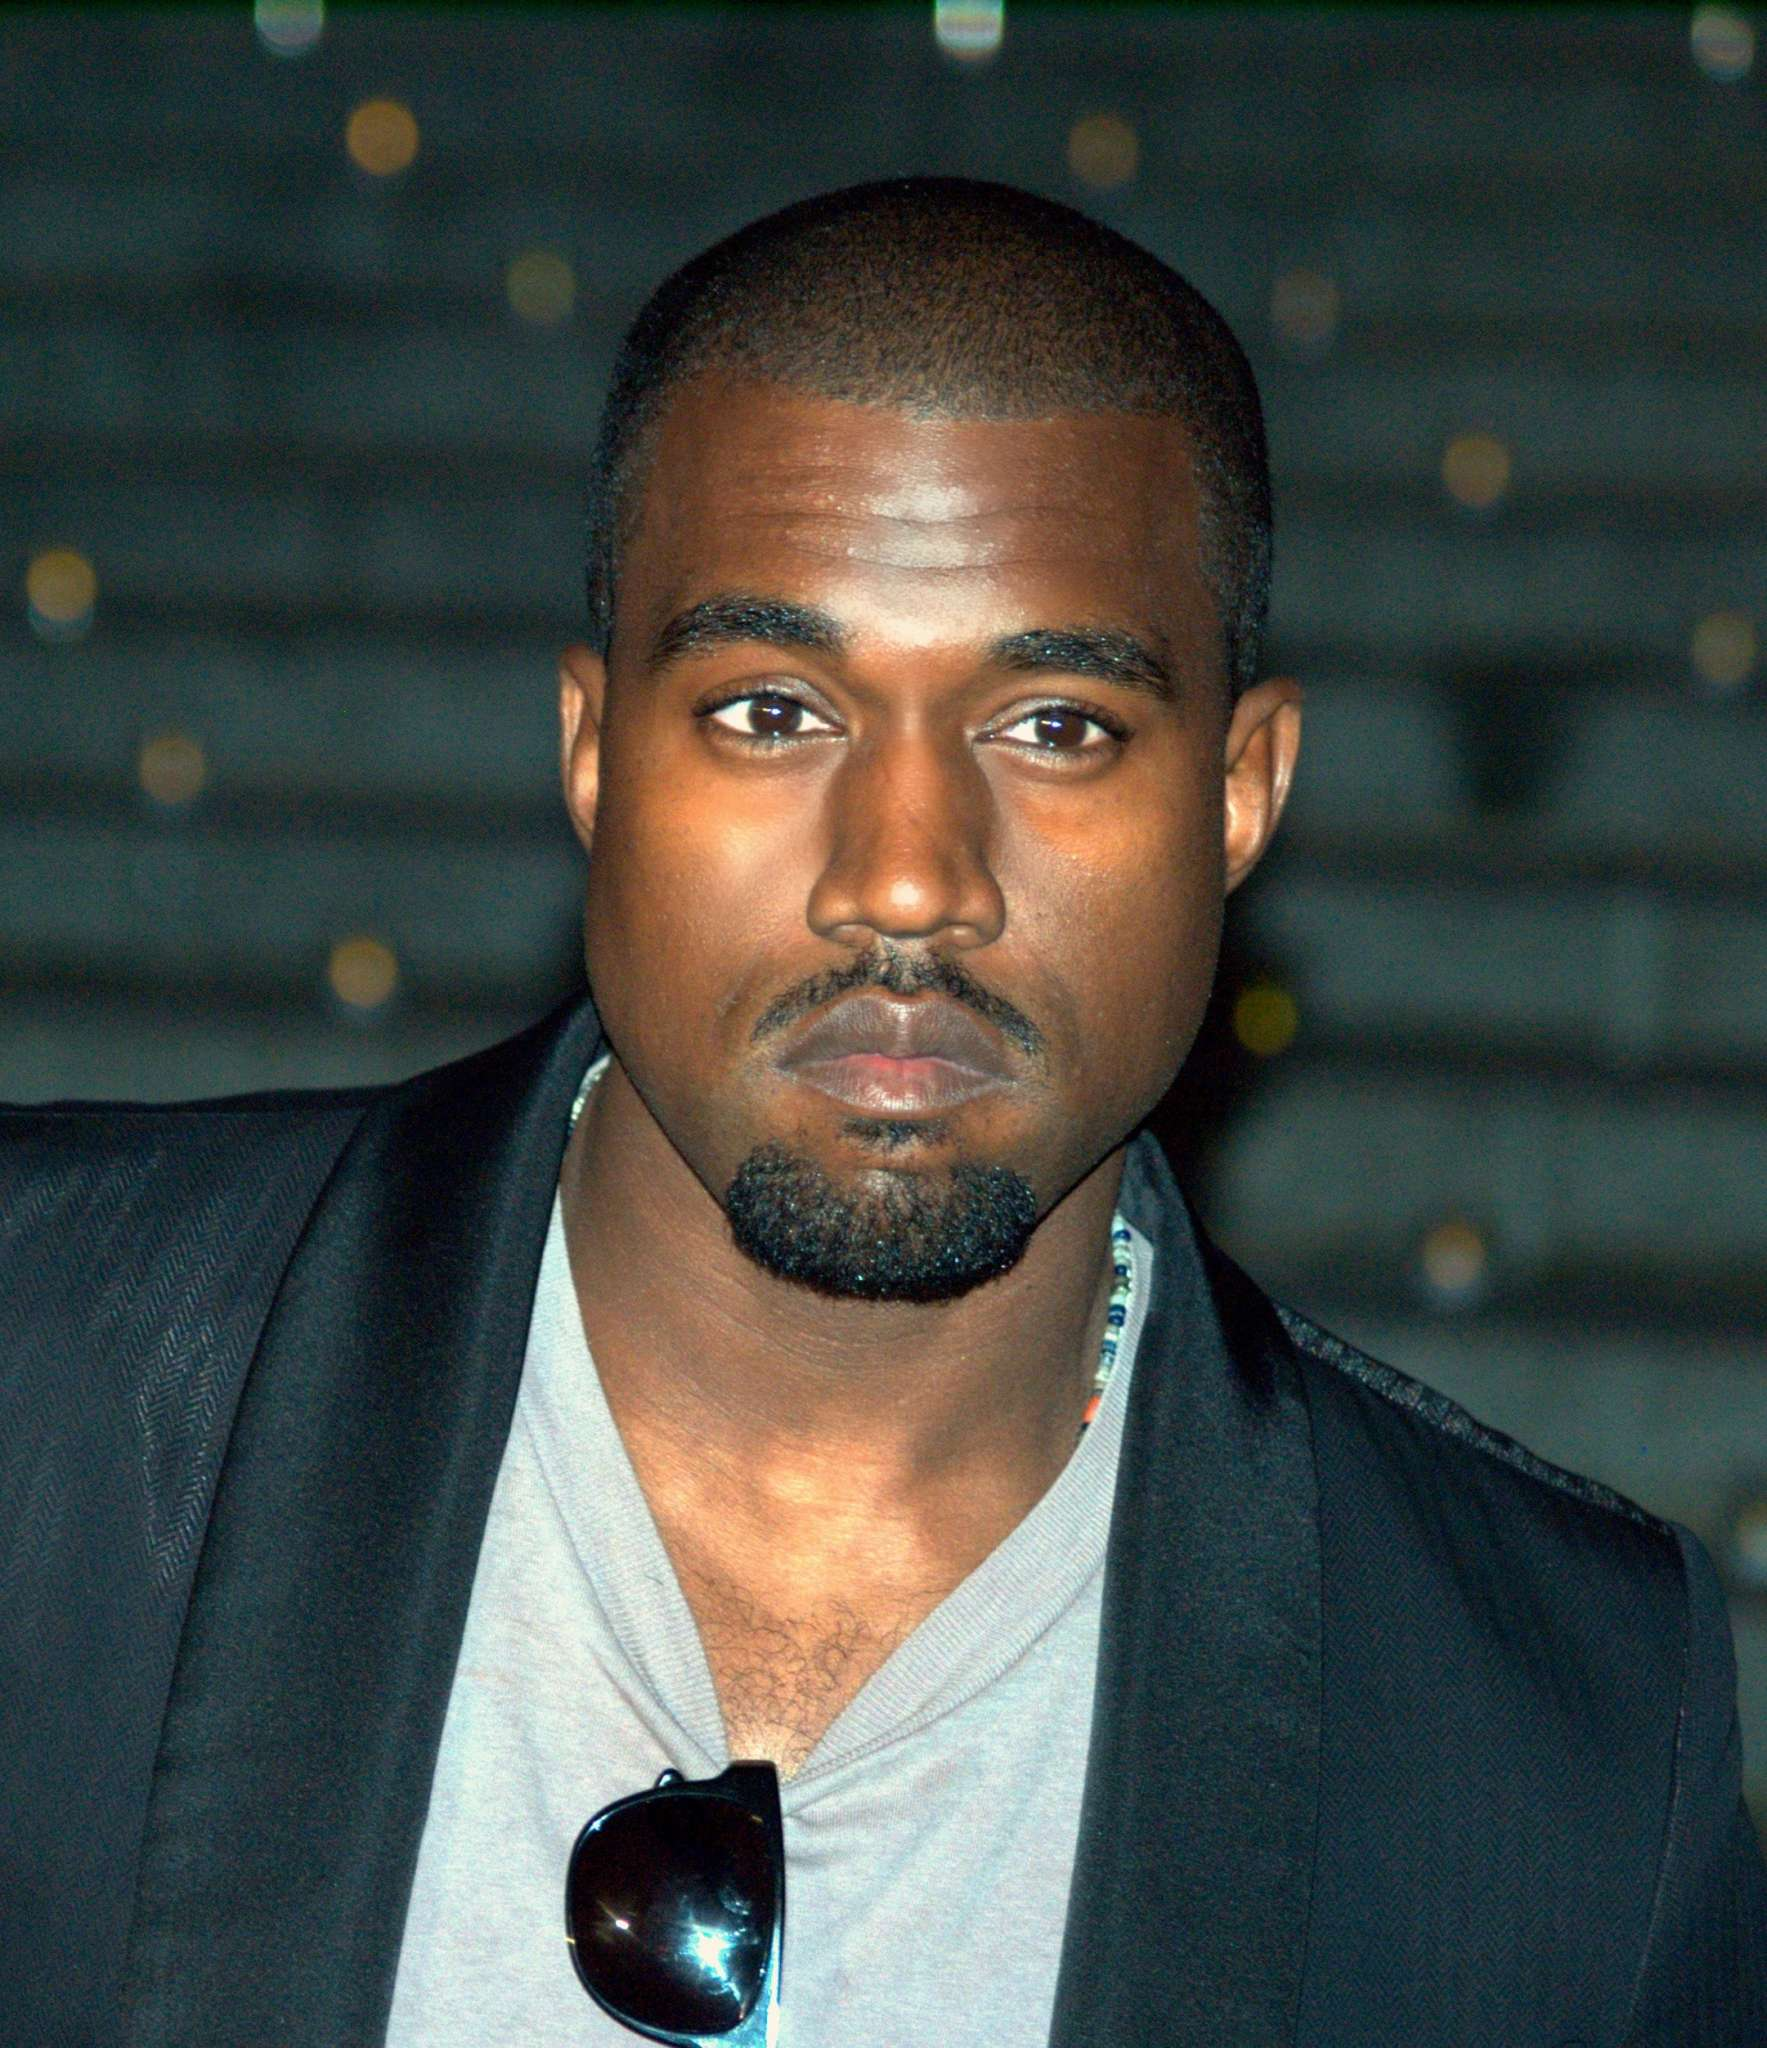 kanye-west-filed-trademark-for-array-of-donda-tech-products